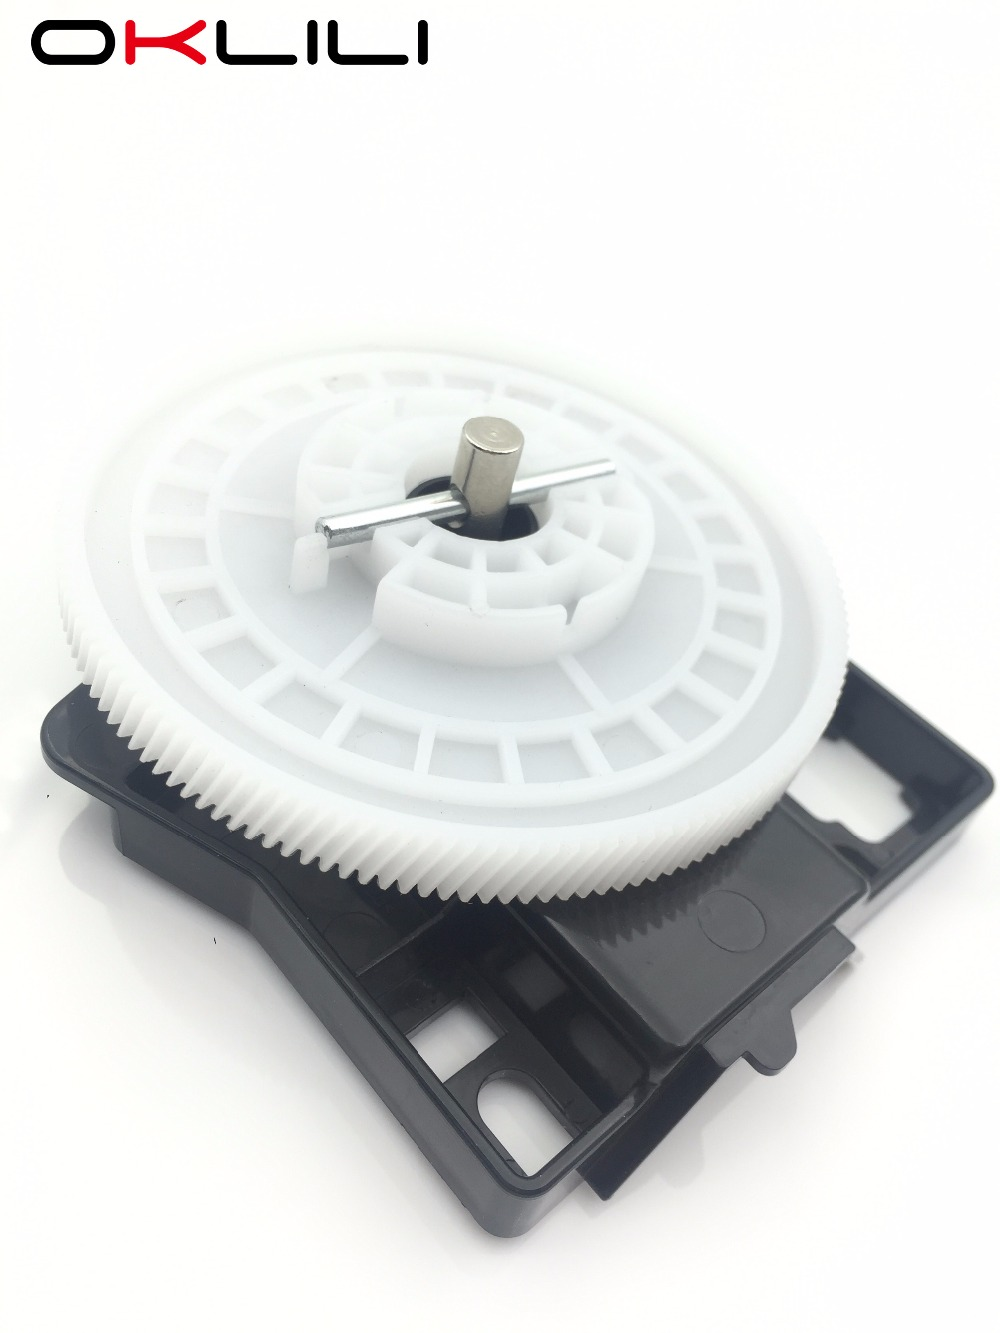 NEW RC3-2497 RC3-2497-000 Toner Drive Assy cover GEAR SUPPORT FRAME Cartridge Drive Gear assy for HP Pro 400 M401 M425 M475 M451 fellowes powershred 99ci black шредер